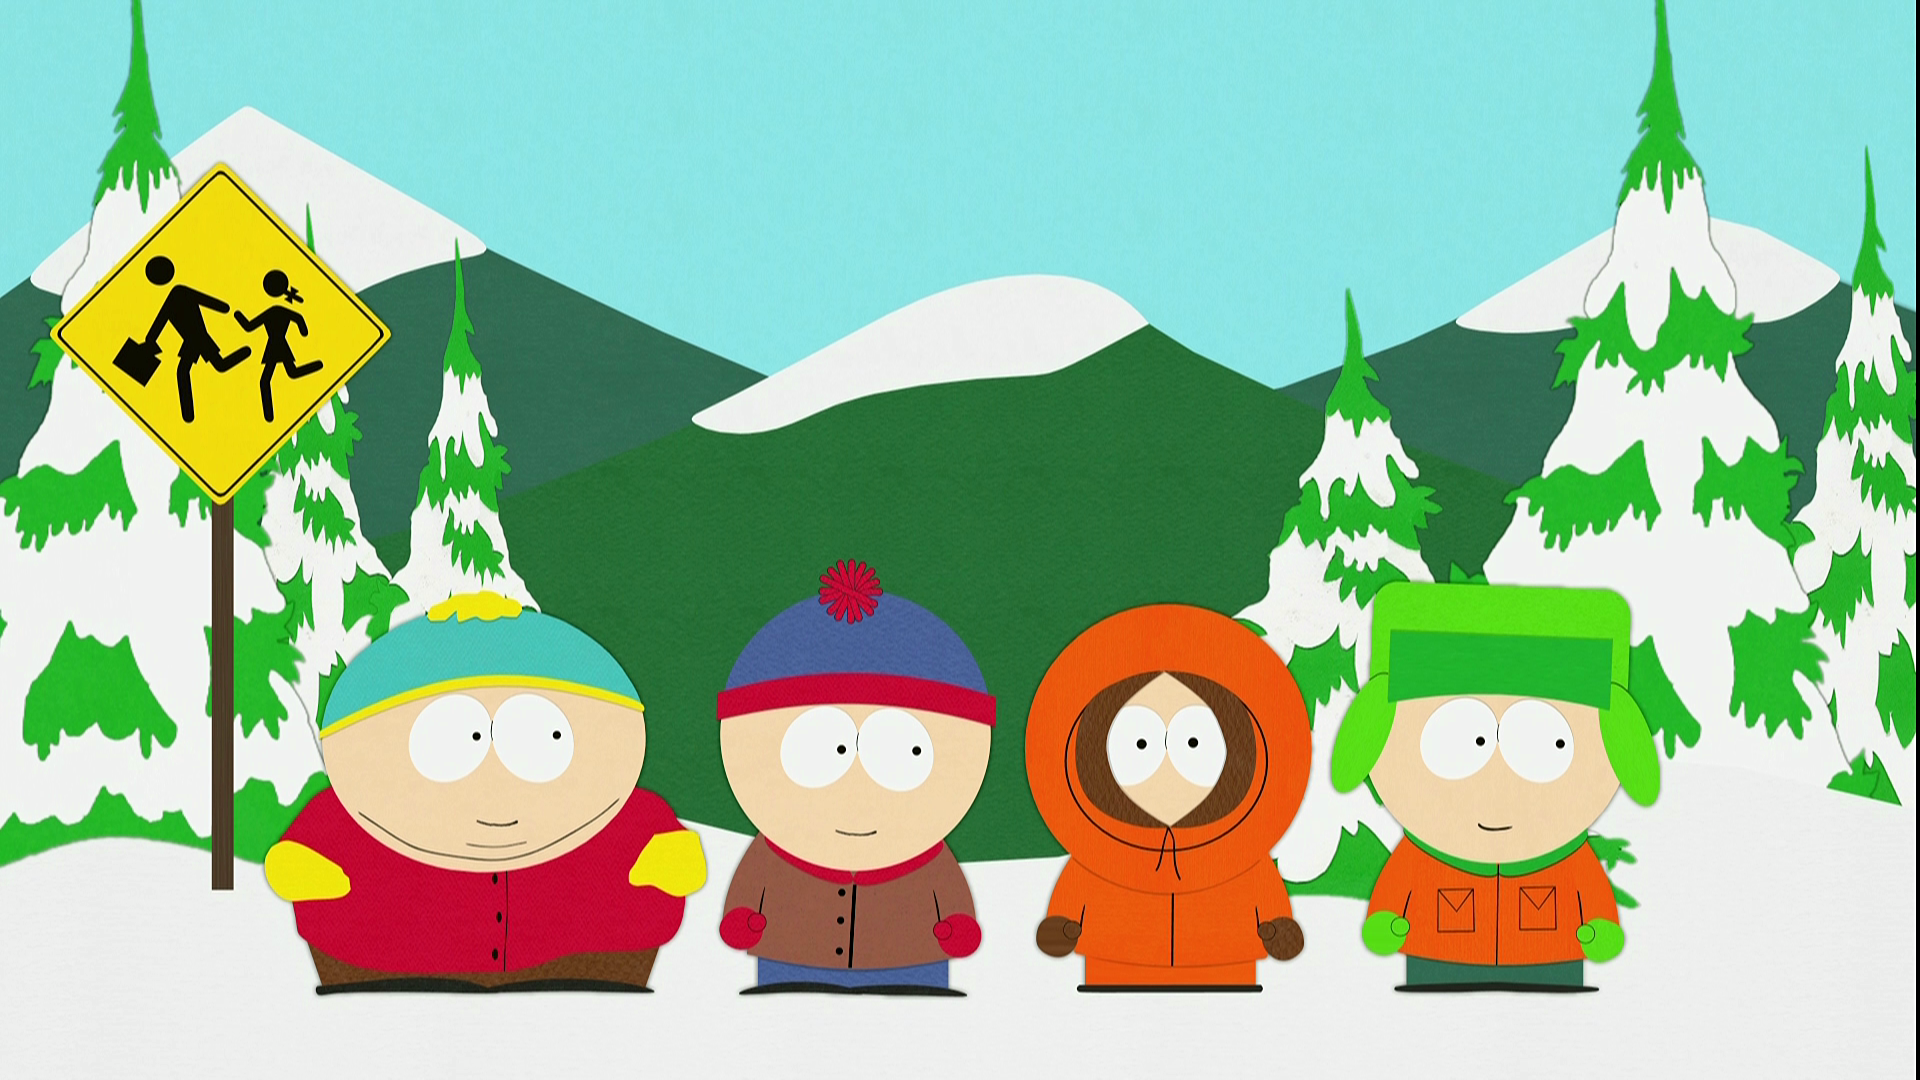 Animaatjes-southpark-41673.png